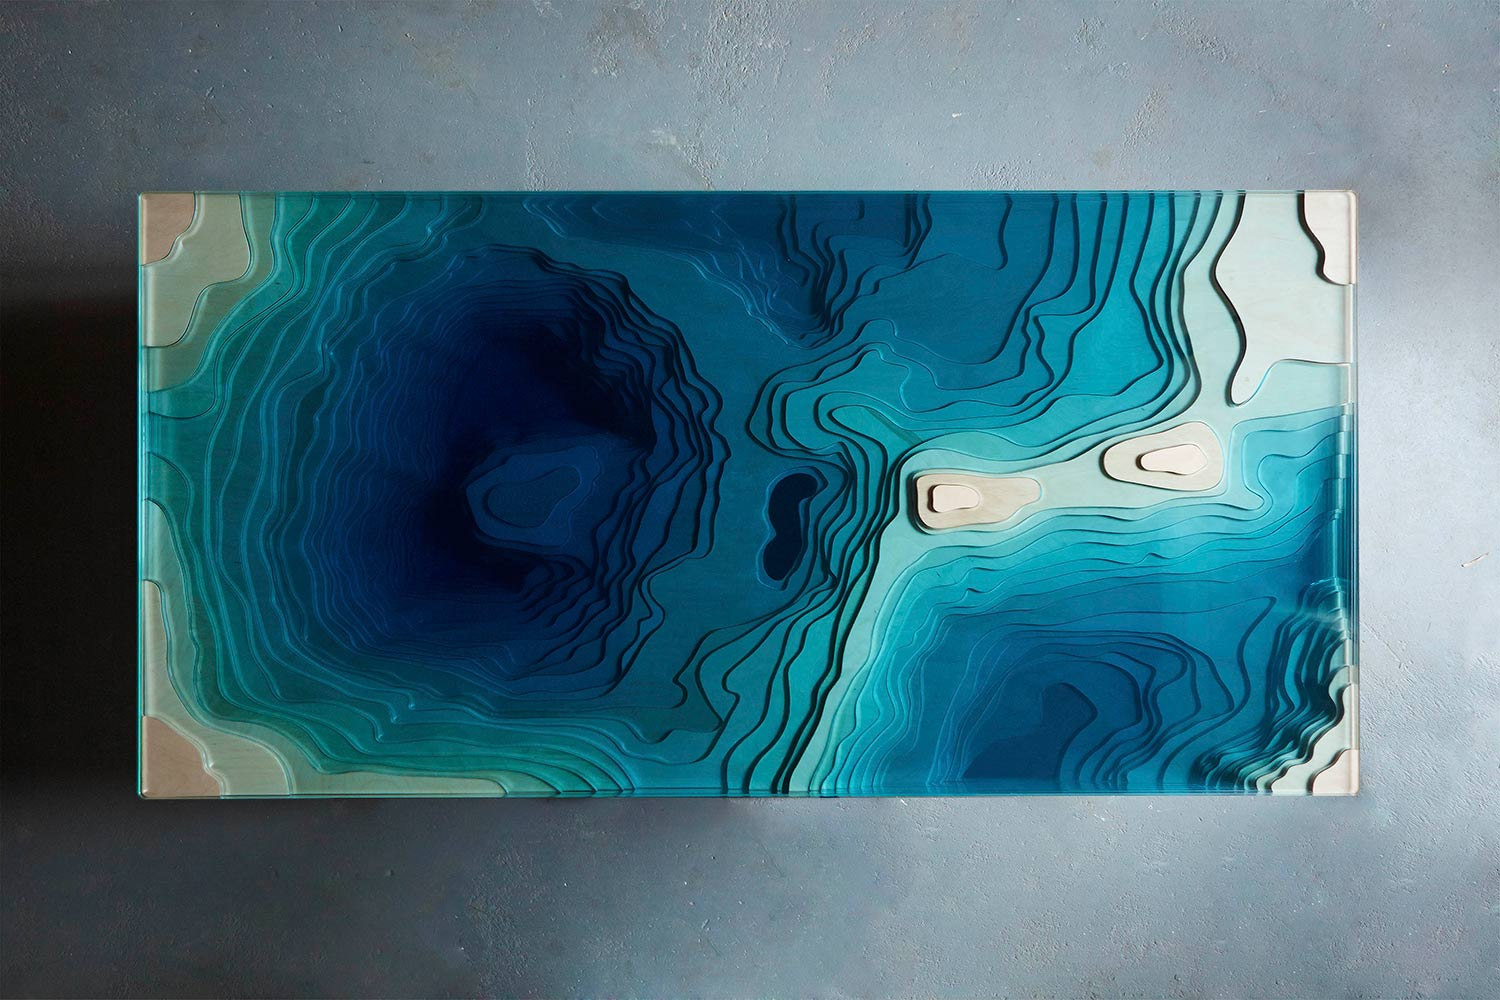 This Coffee Table Design Puts An Ocean Abyss In Your Home